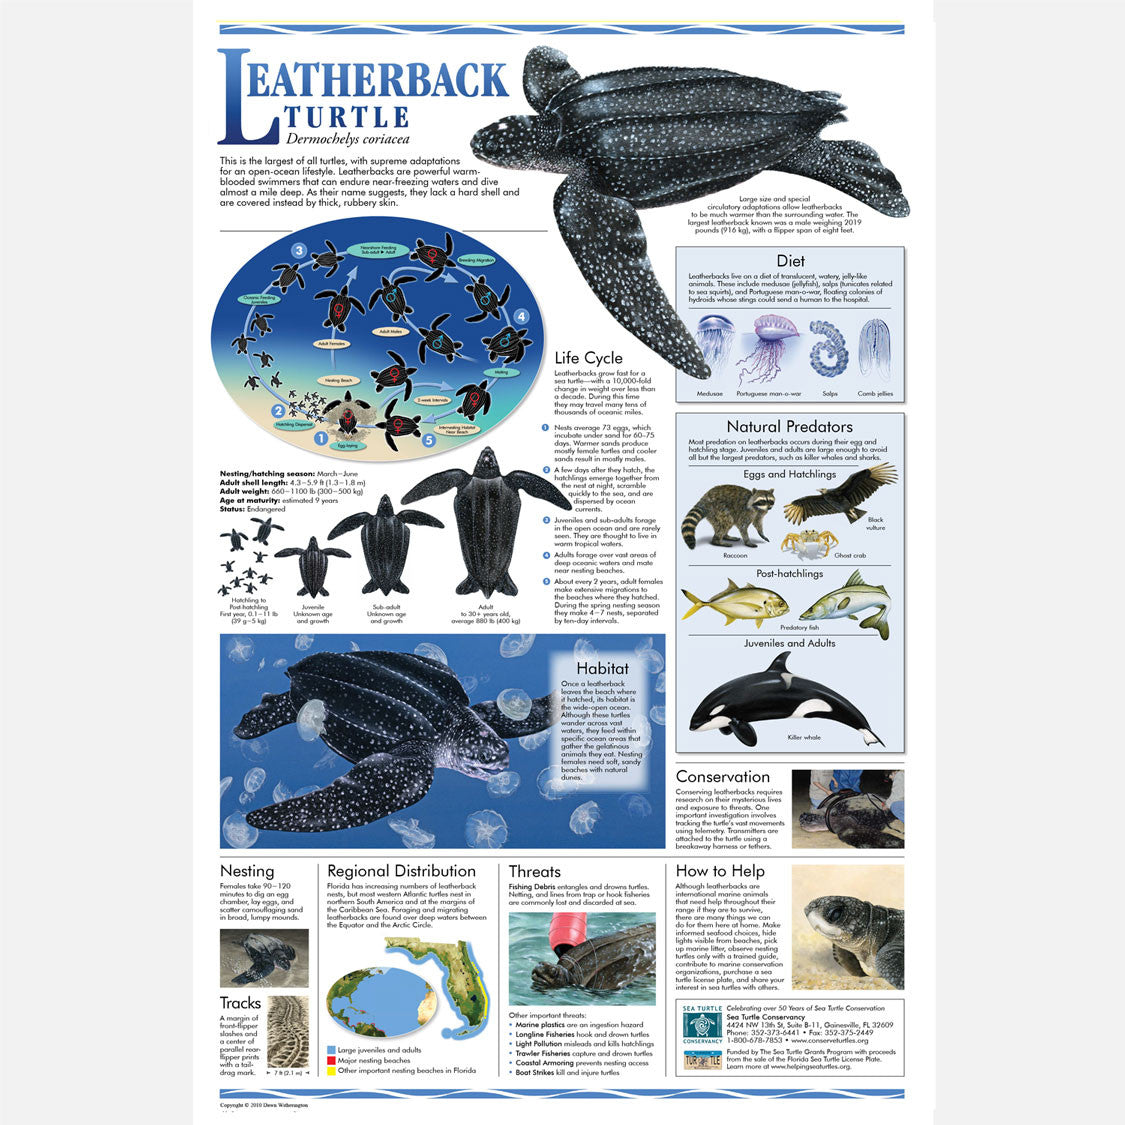 This beautiful poster provides information about the leatherback sea turtle.